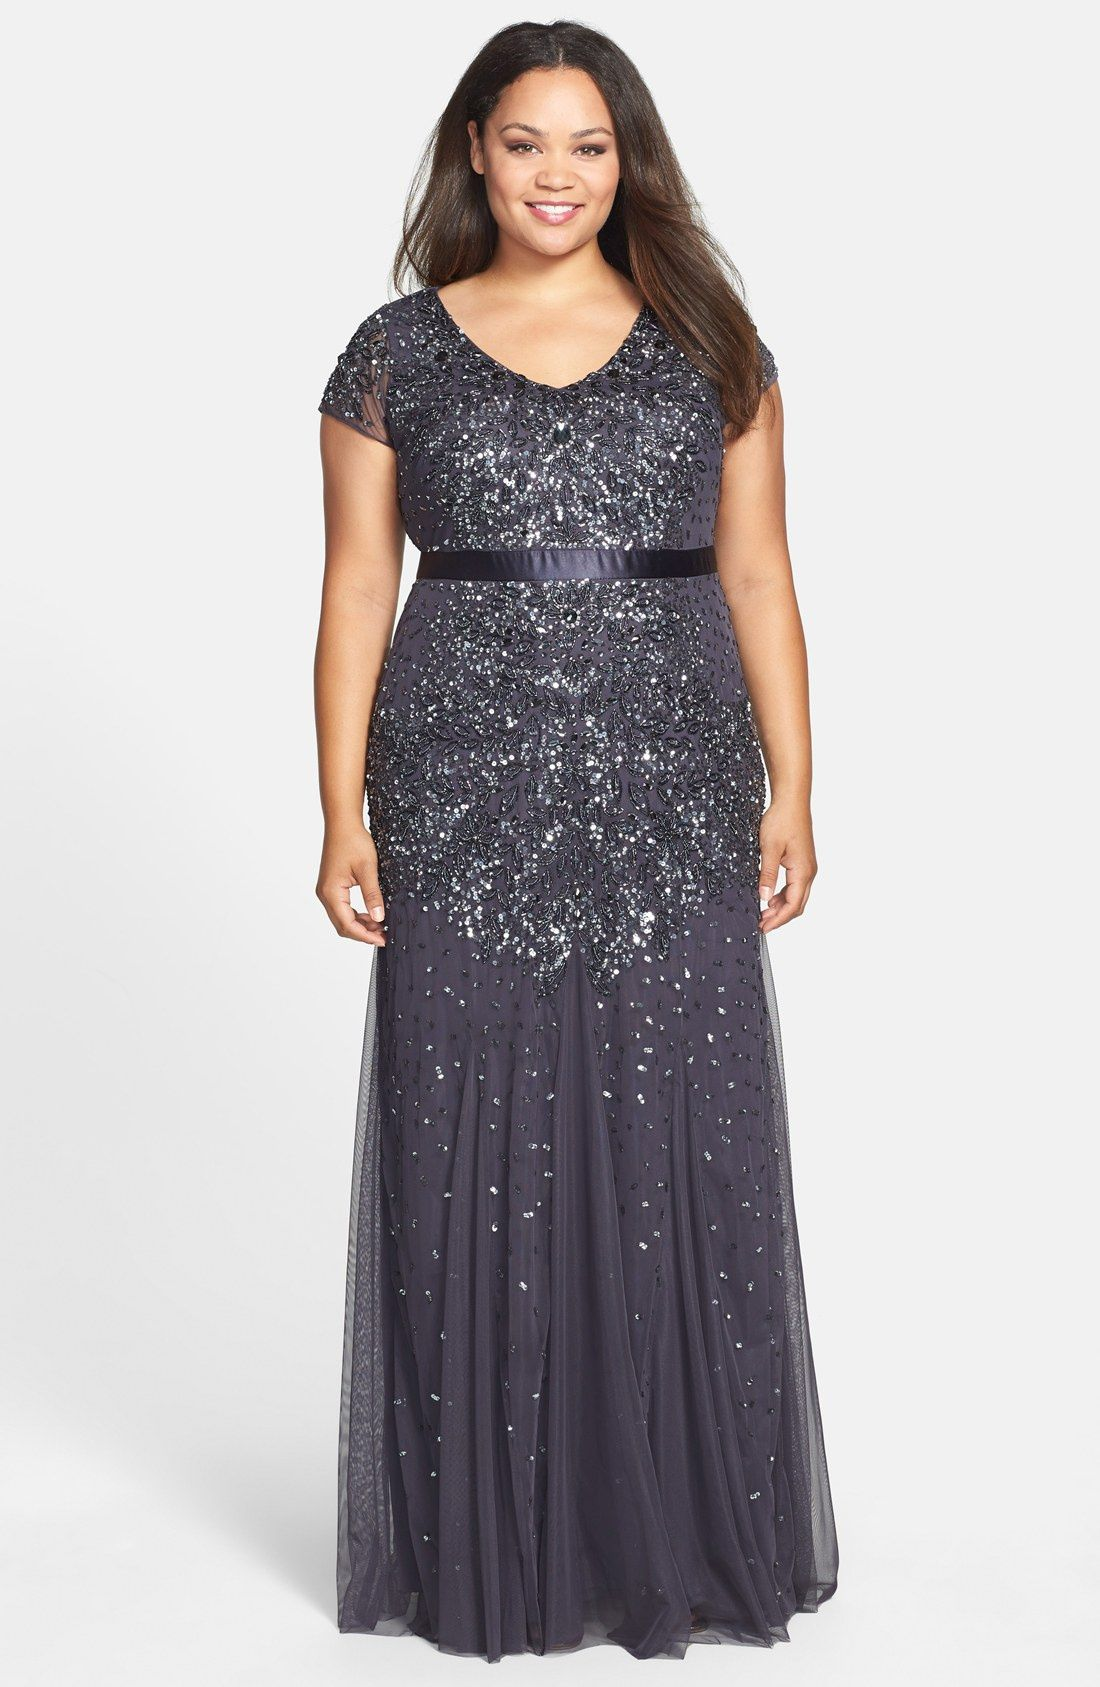 Formal Adrianna Papell Plus-Size Clothing For Women | Nordstrom ...